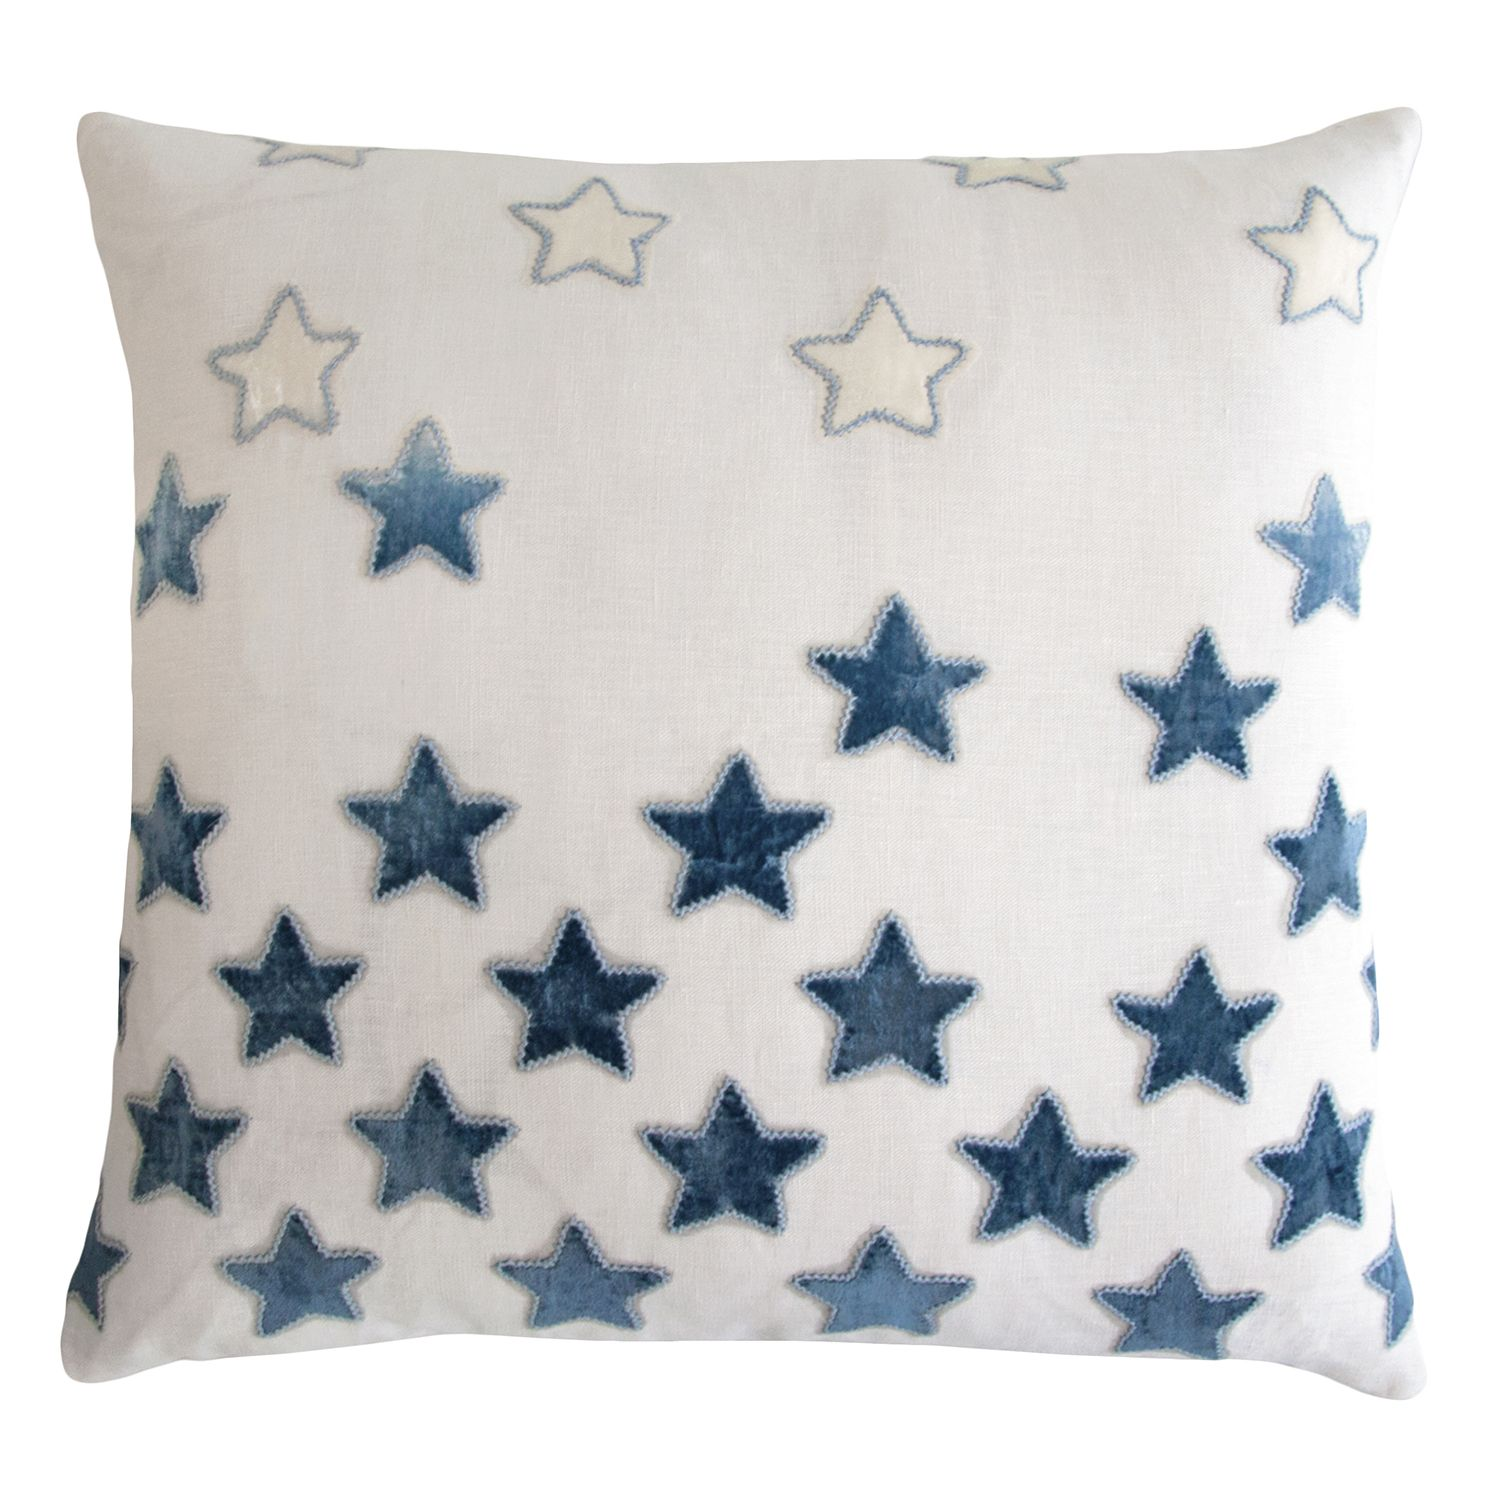 Throw Pillows With Stars : Kevin OBrien Studio Stars Embroidered Velvet Applique Decorative Pillow